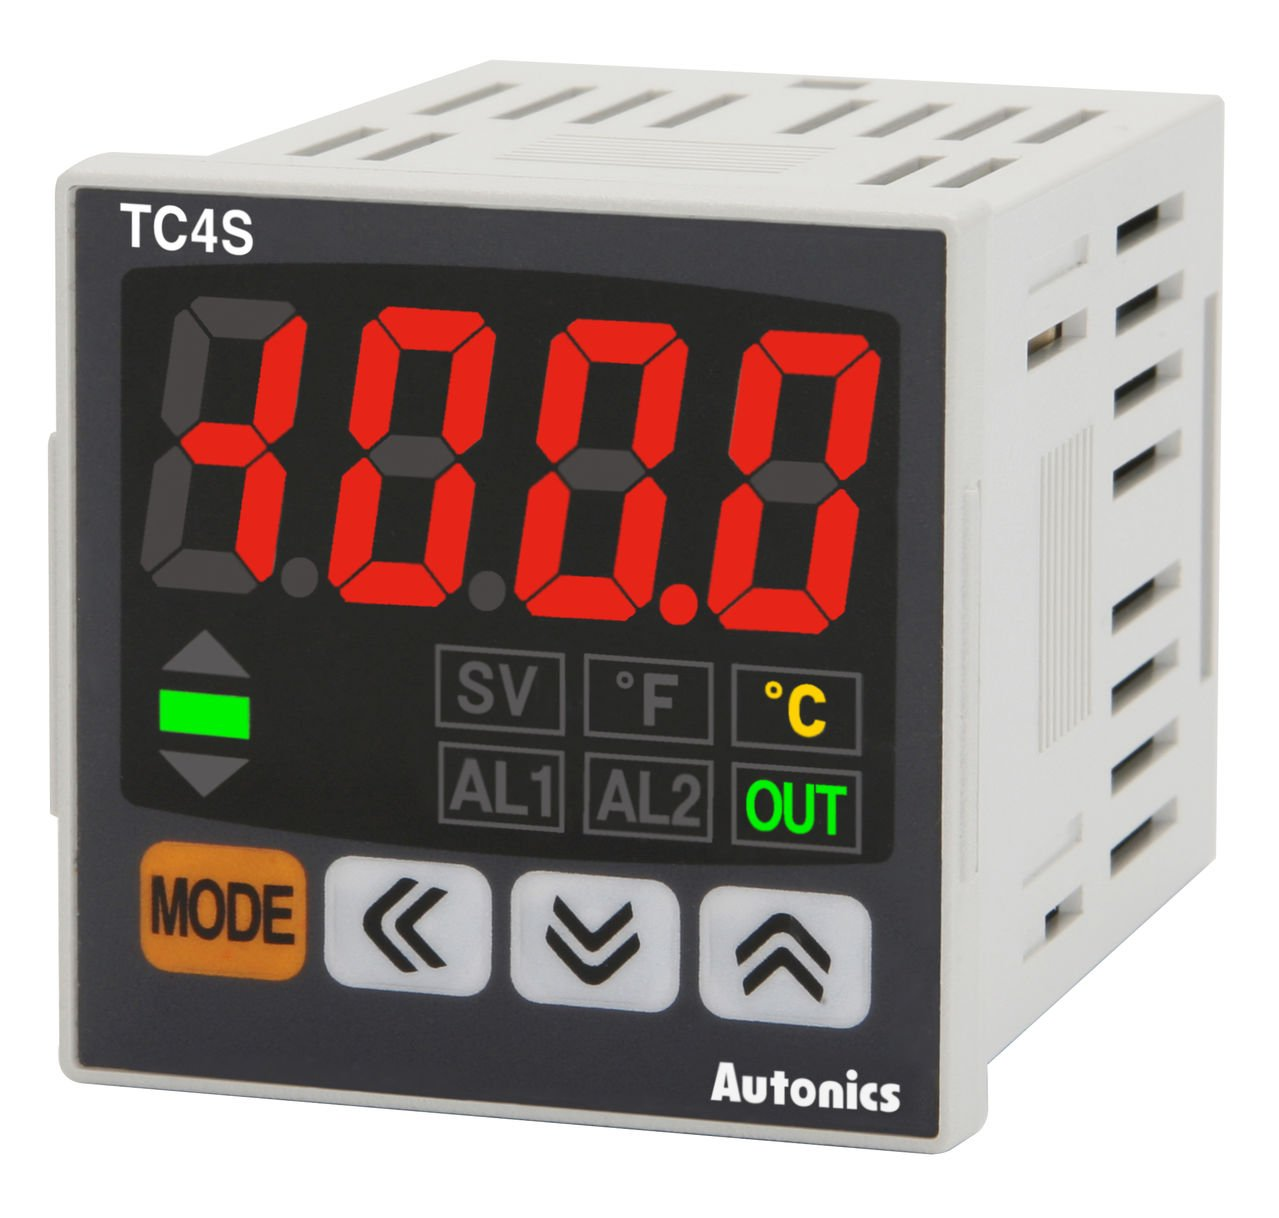 Autonics TC4SP-12R Temp Control, 1/16 DIN, 11 Pin, Single display, 4 Digit, PID Control, Relay & SSR Output, 1 Alarm Output, 12-48VDC, 24VAC 50/60Hz (Socket Required).. by Autonics USA, Inc